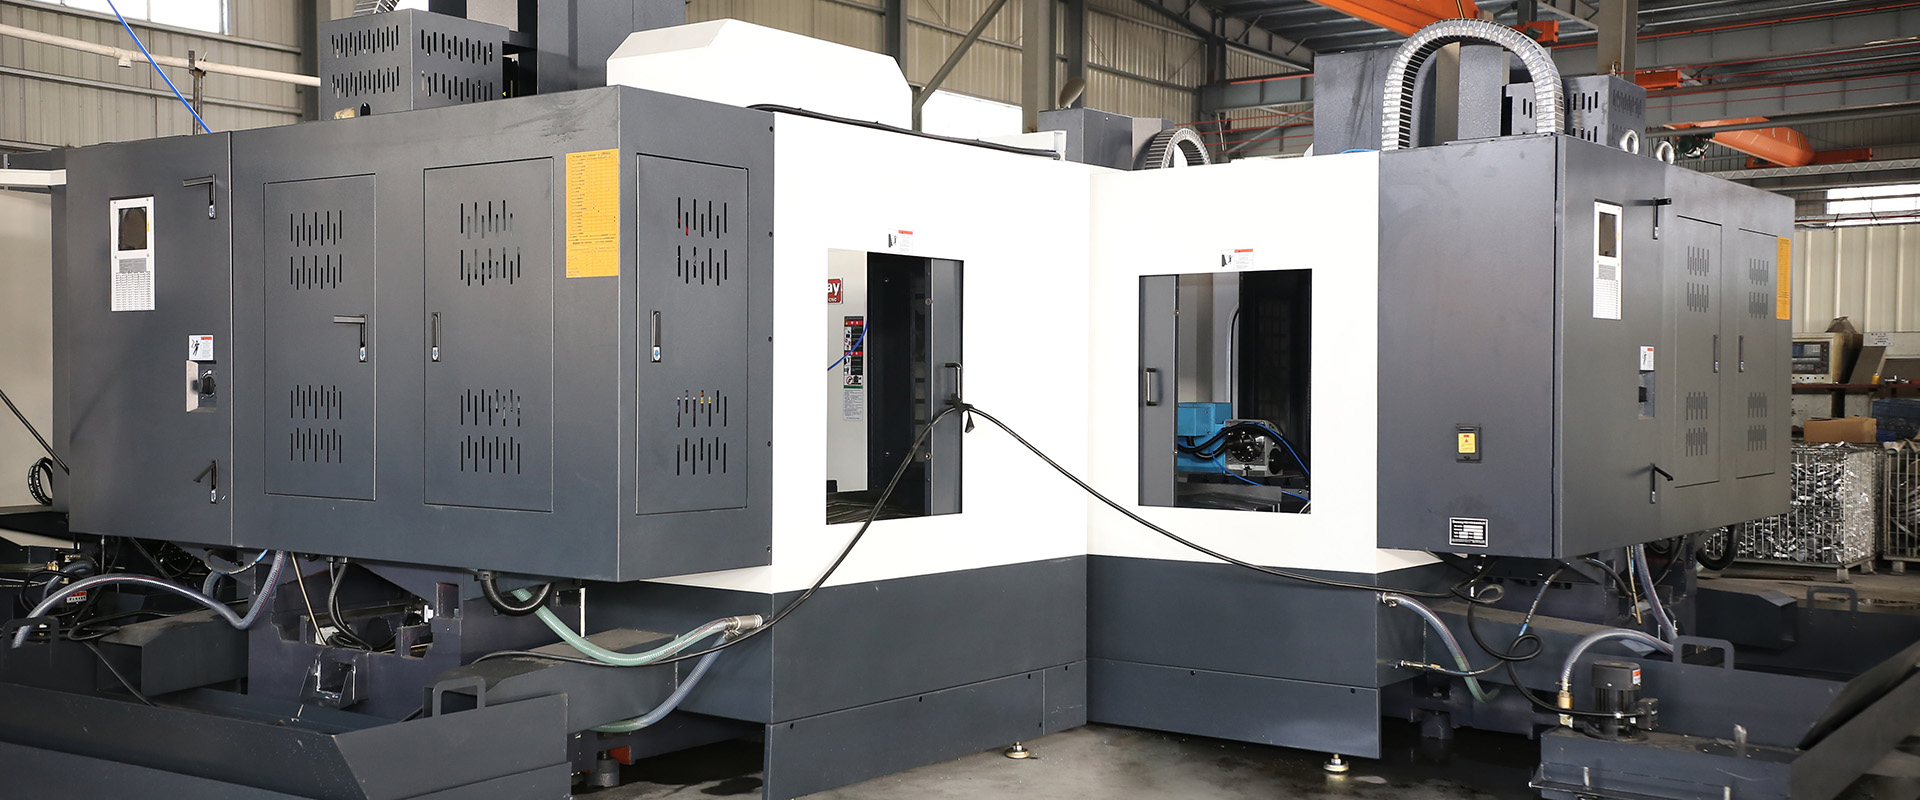 Precision NC Machining Center 3